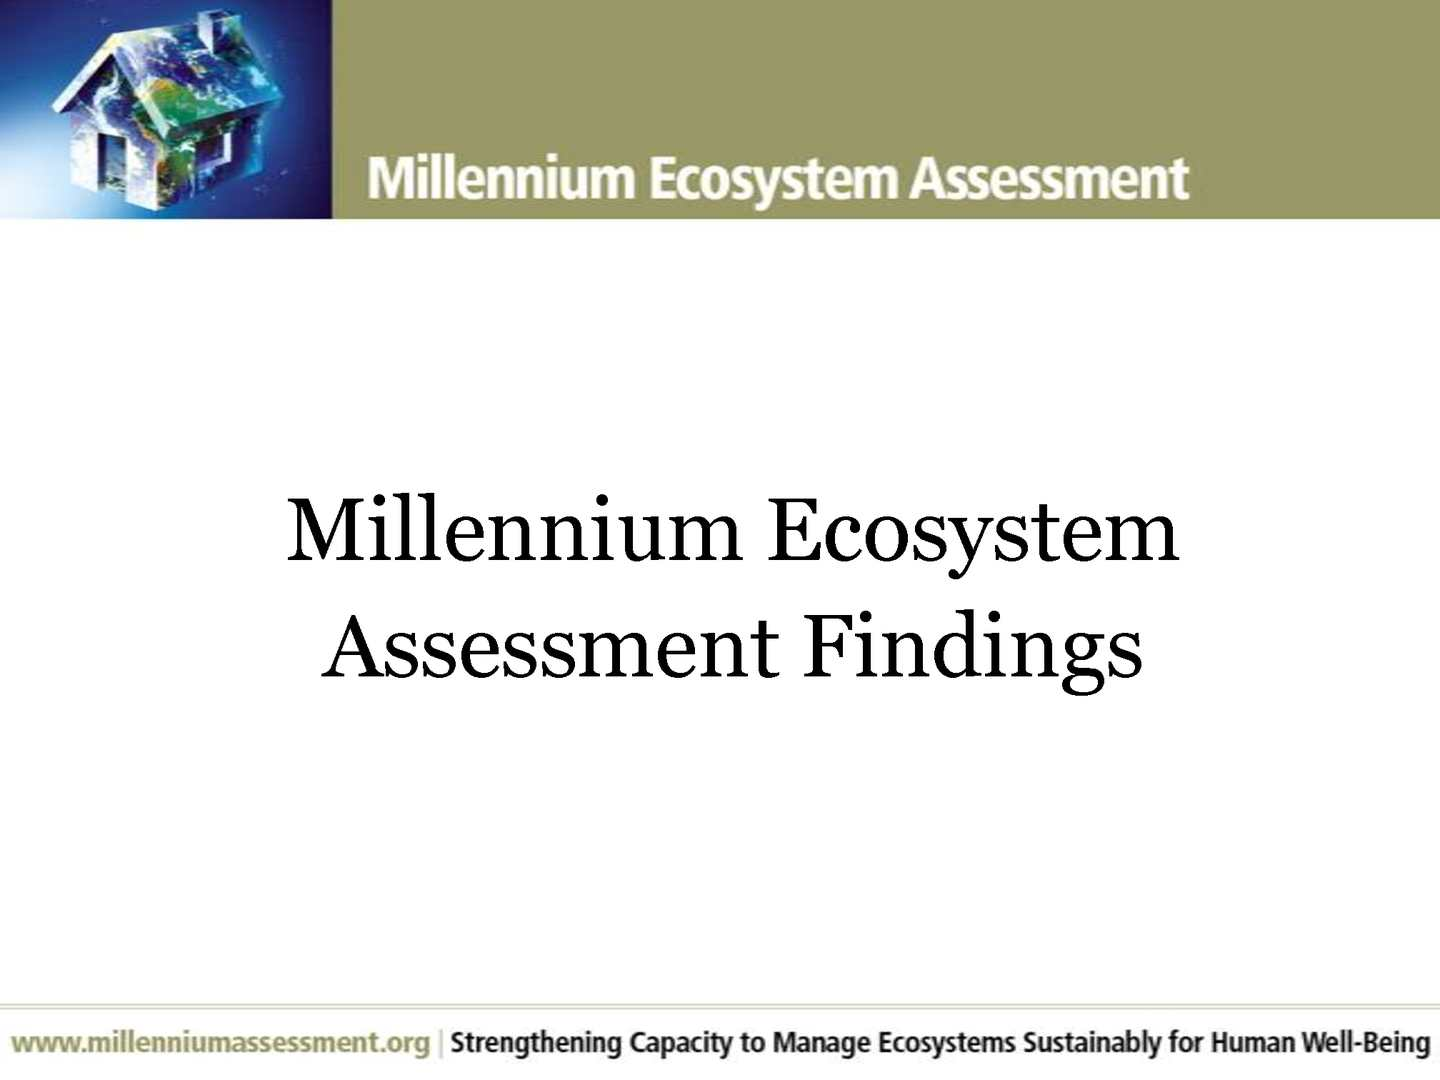 Millenium Ecosystems Findings